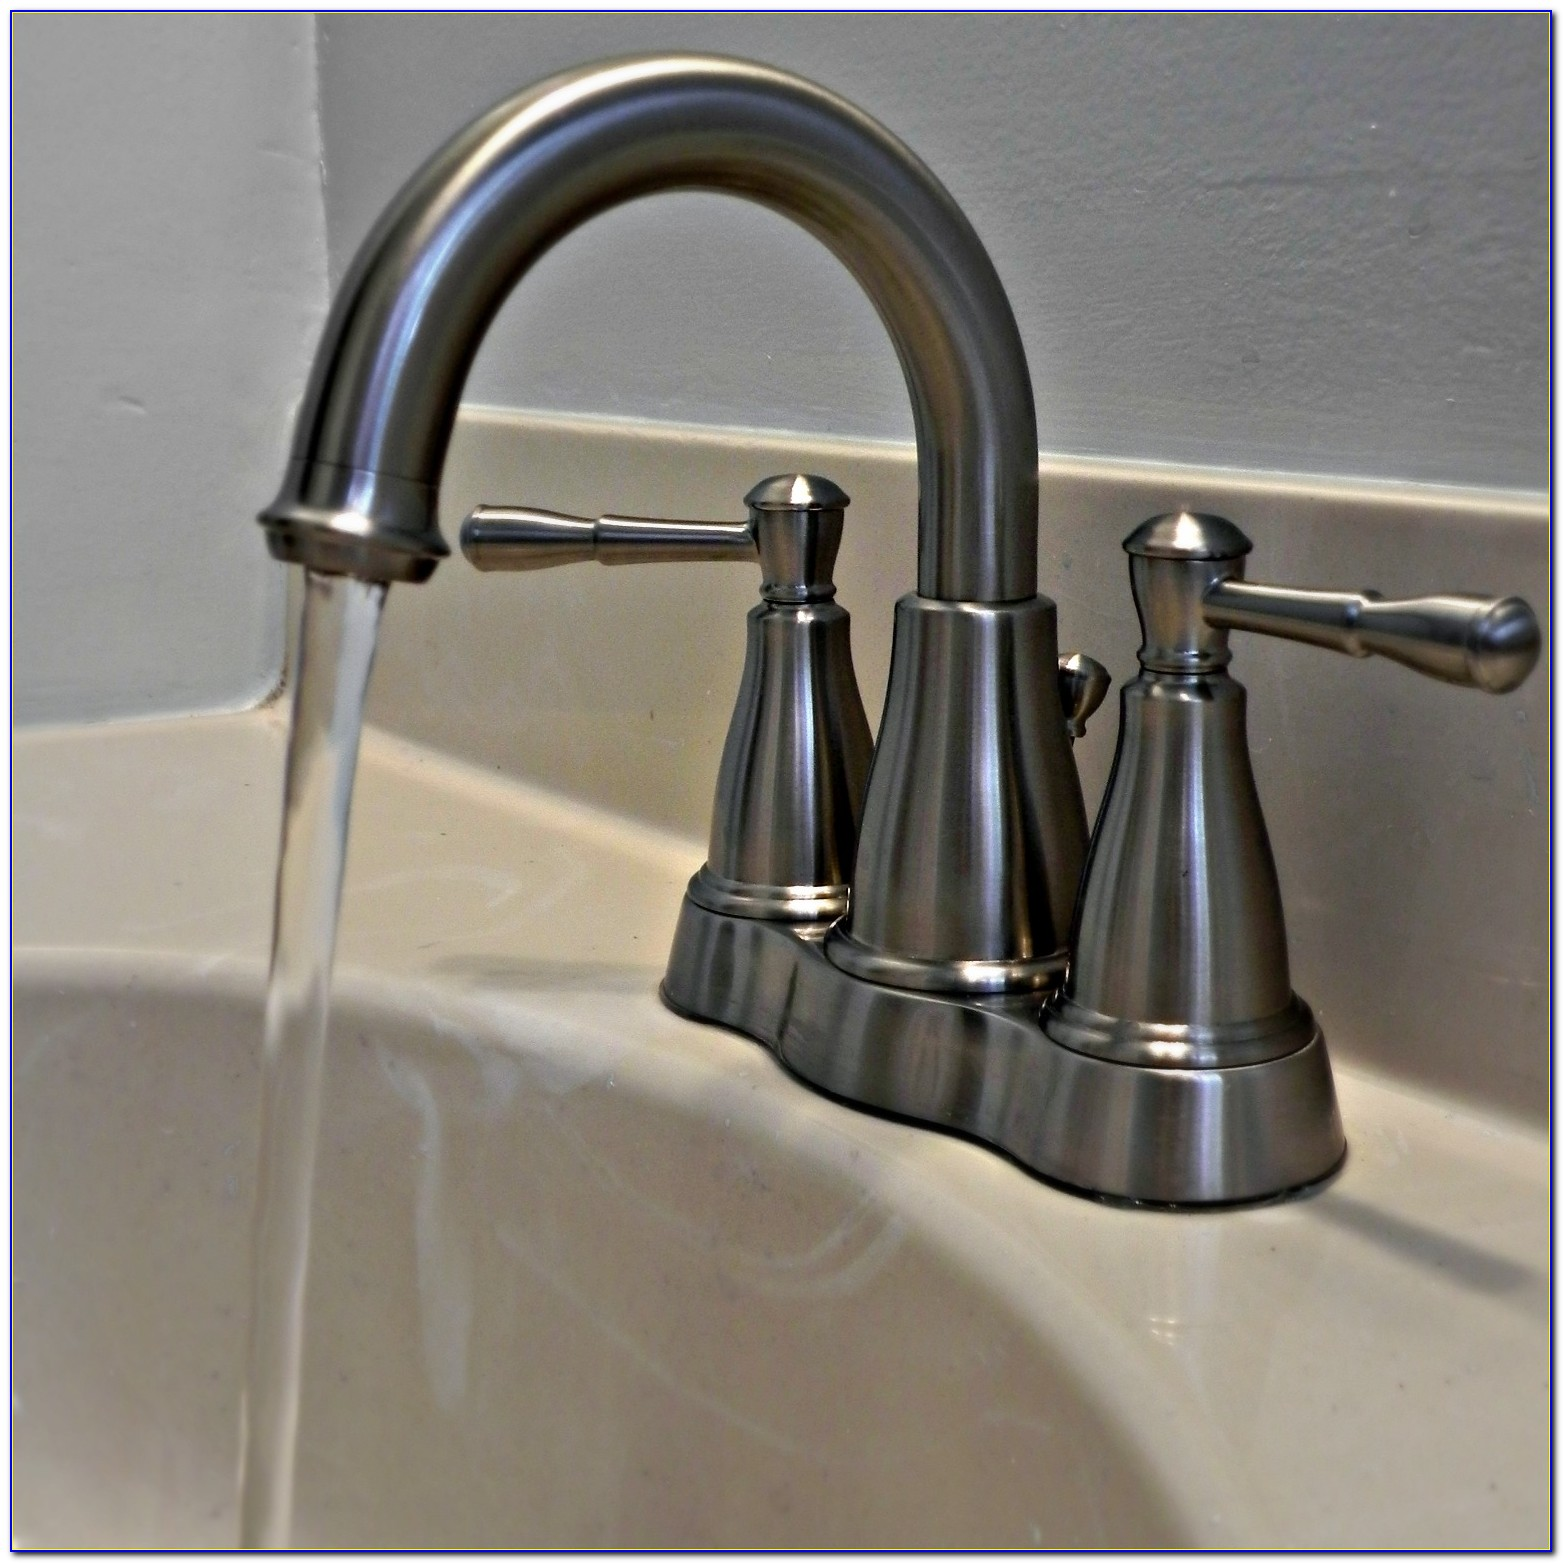 Moen Faucets For Bathroom Sinks